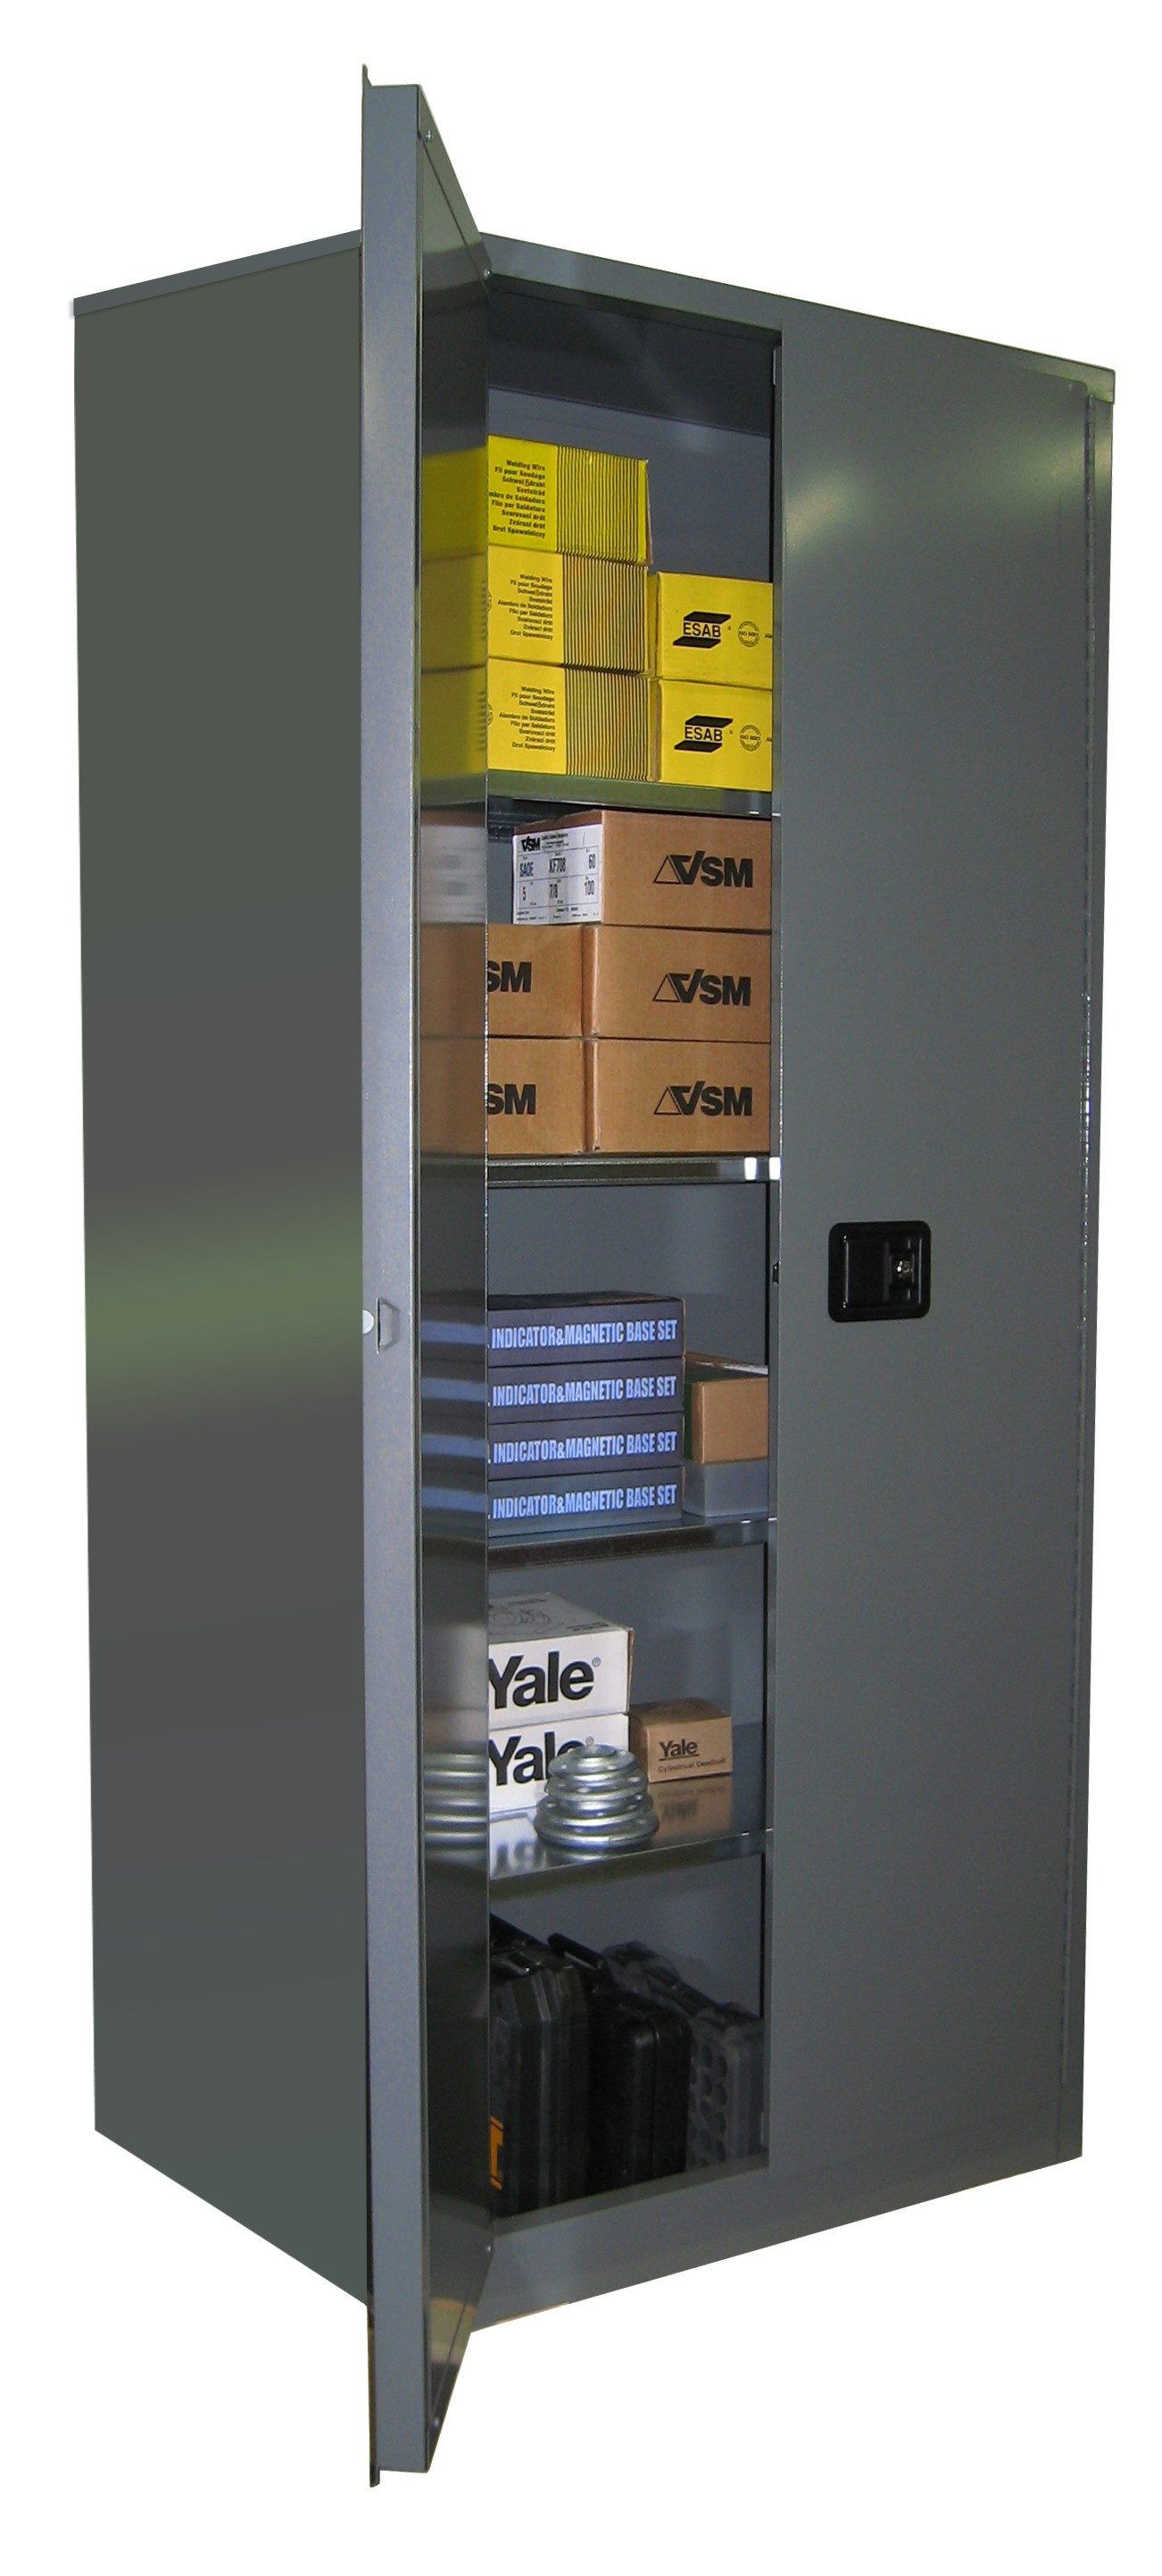 SS284 - Industrial Storage Cabinet - 42 Cubic Feet Capacity